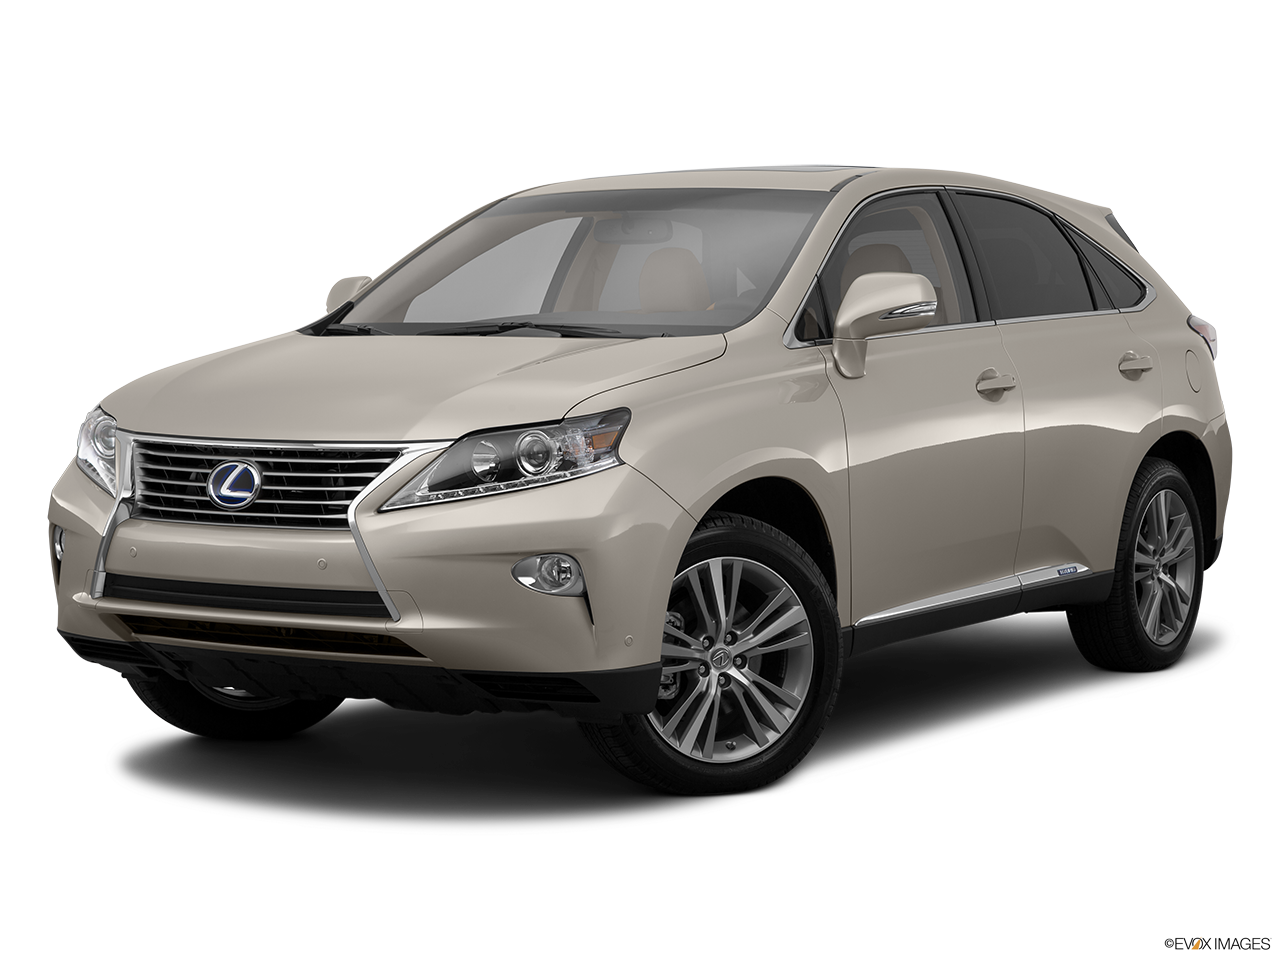 2015 lexus rx 450h dealer serving los angeles lexus of woodland hills. Black Bedroom Furniture Sets. Home Design Ideas